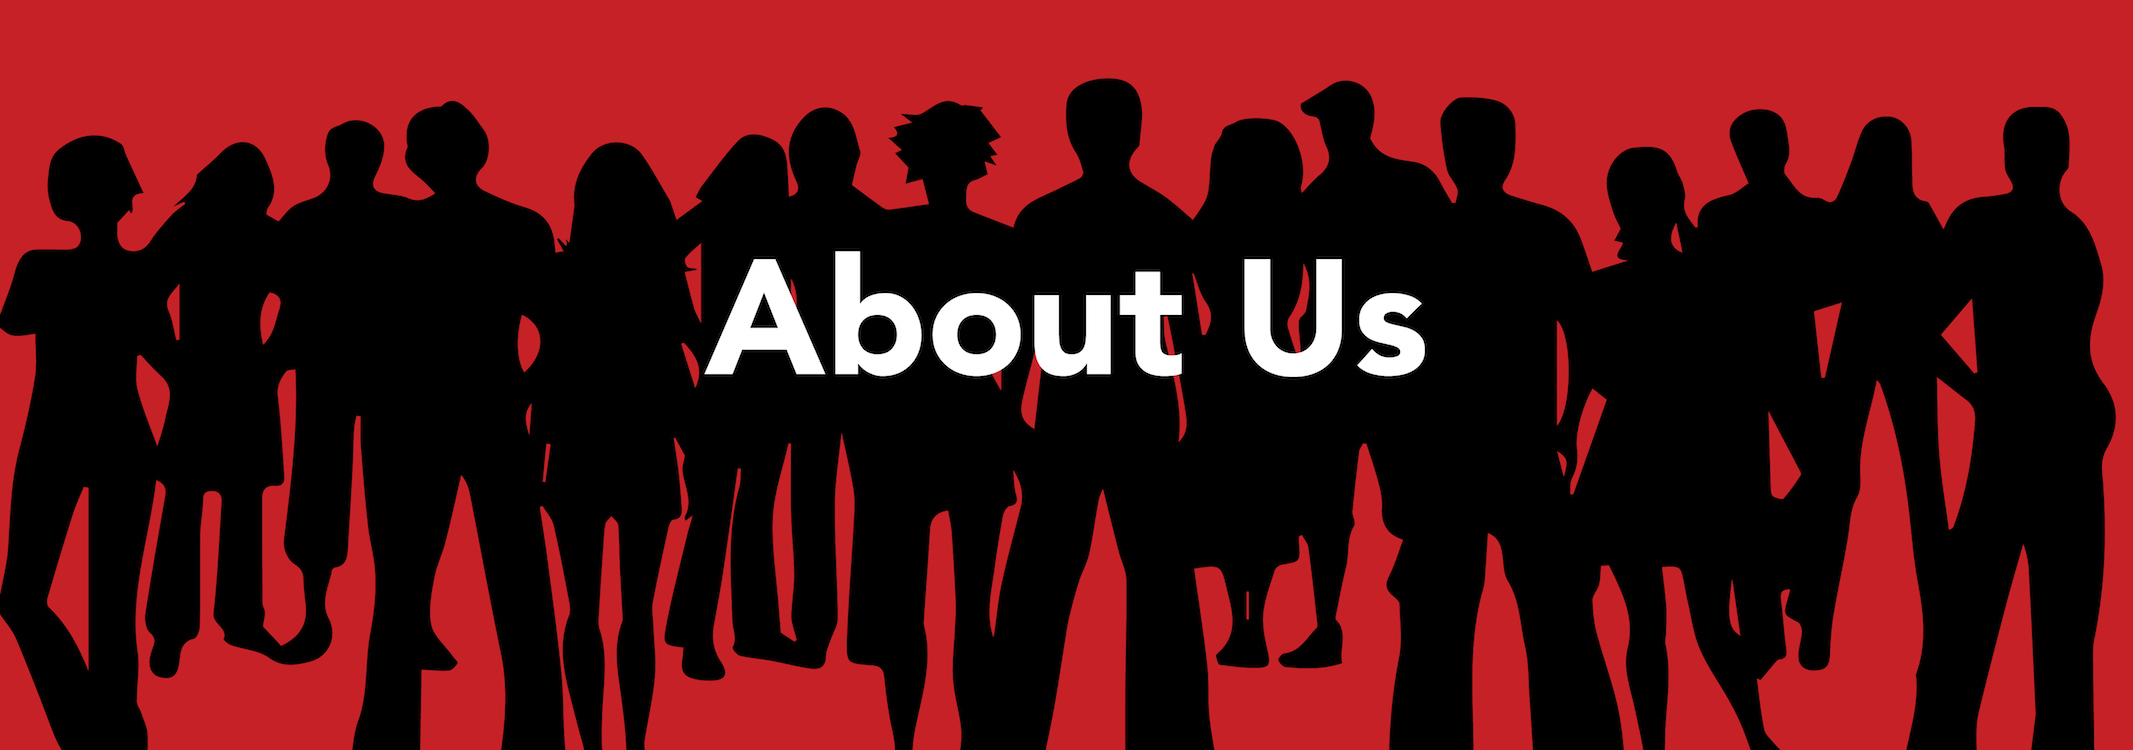 About Us | Odd Poppy Creative | Advertising Agency | Johannesburg | Pretoria | Cape Town | Bloemfontein